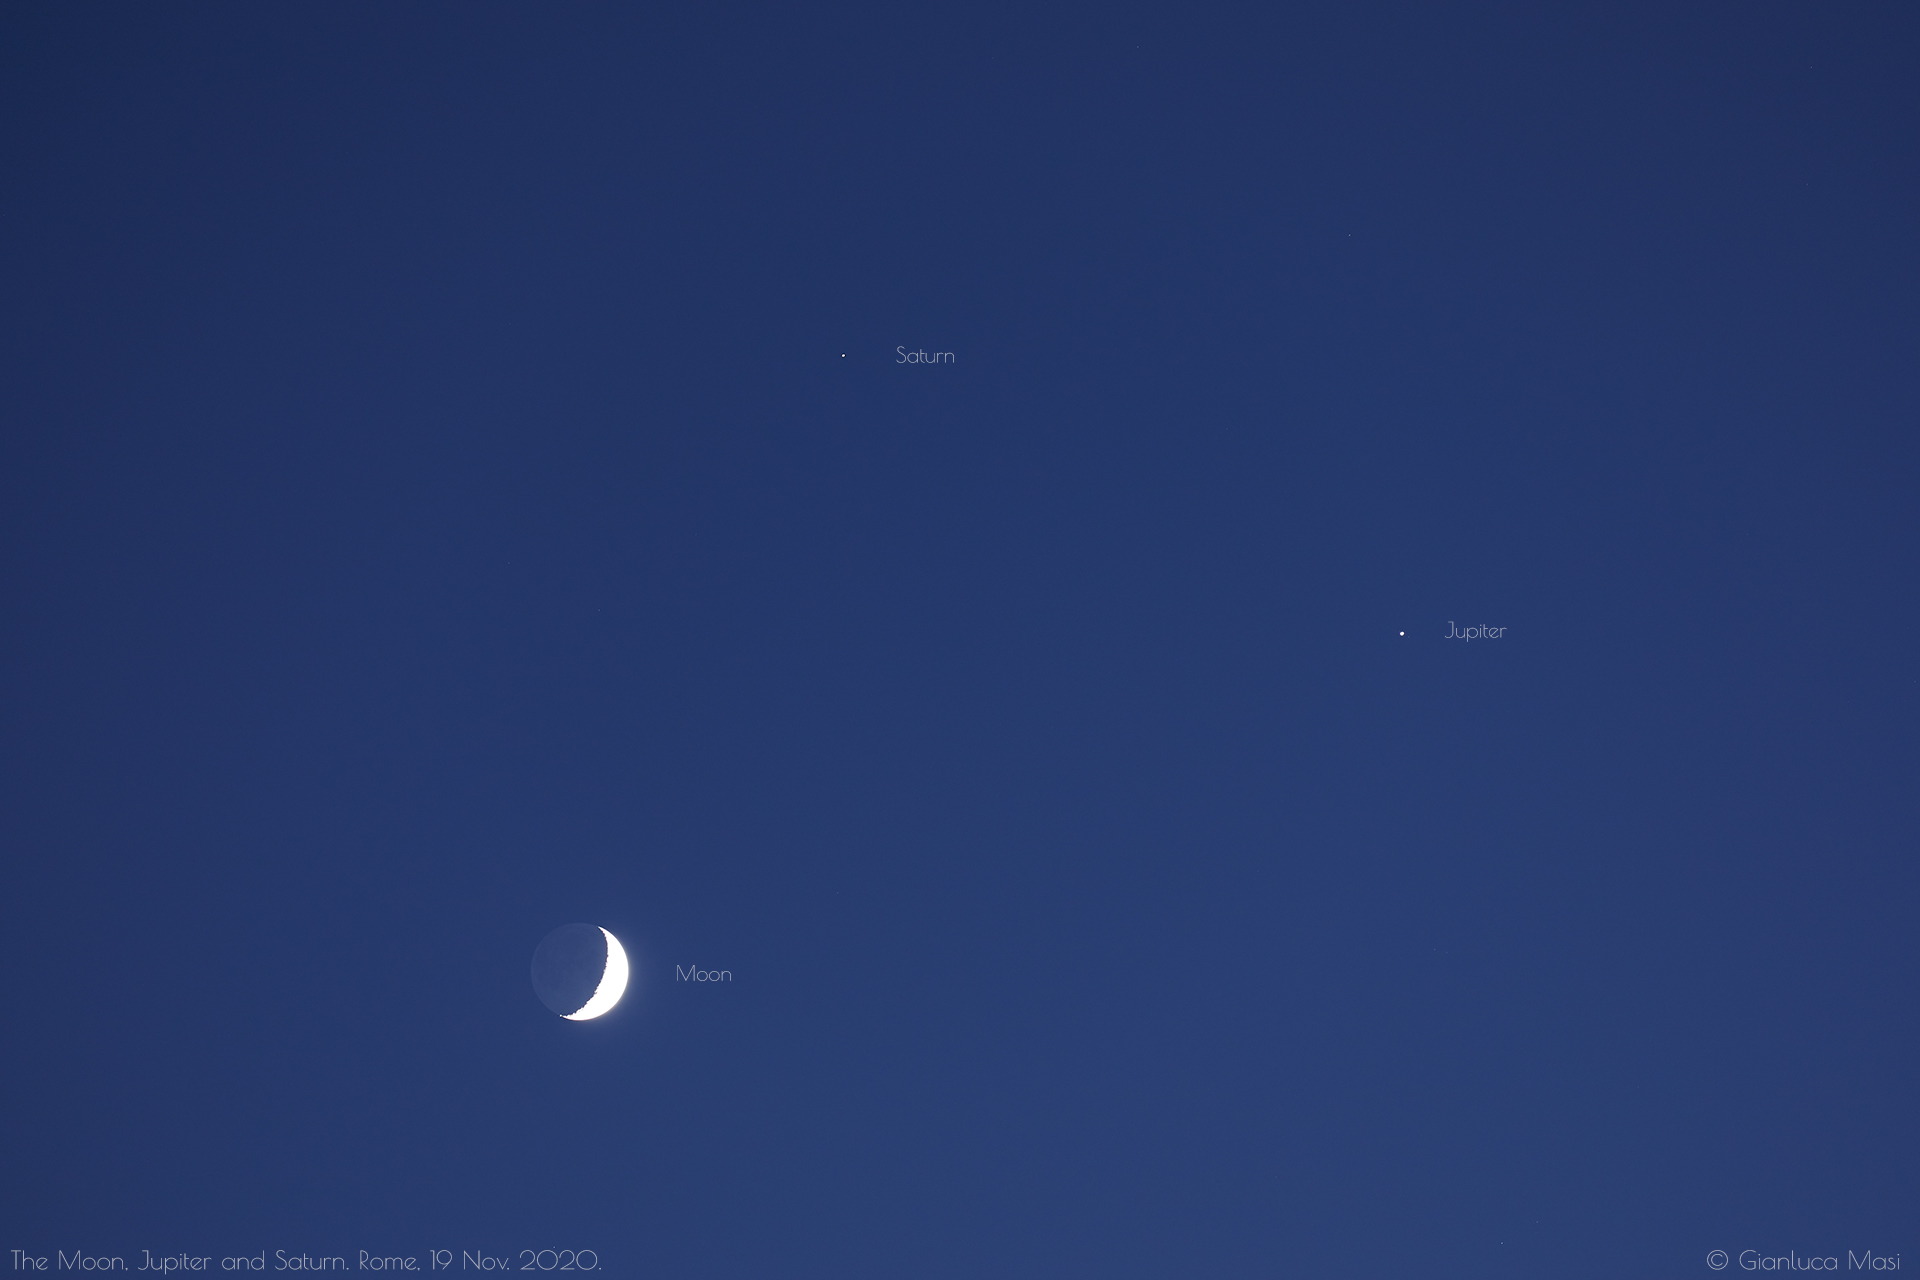 The Moon, Jupiter and Saturn properly labelled.